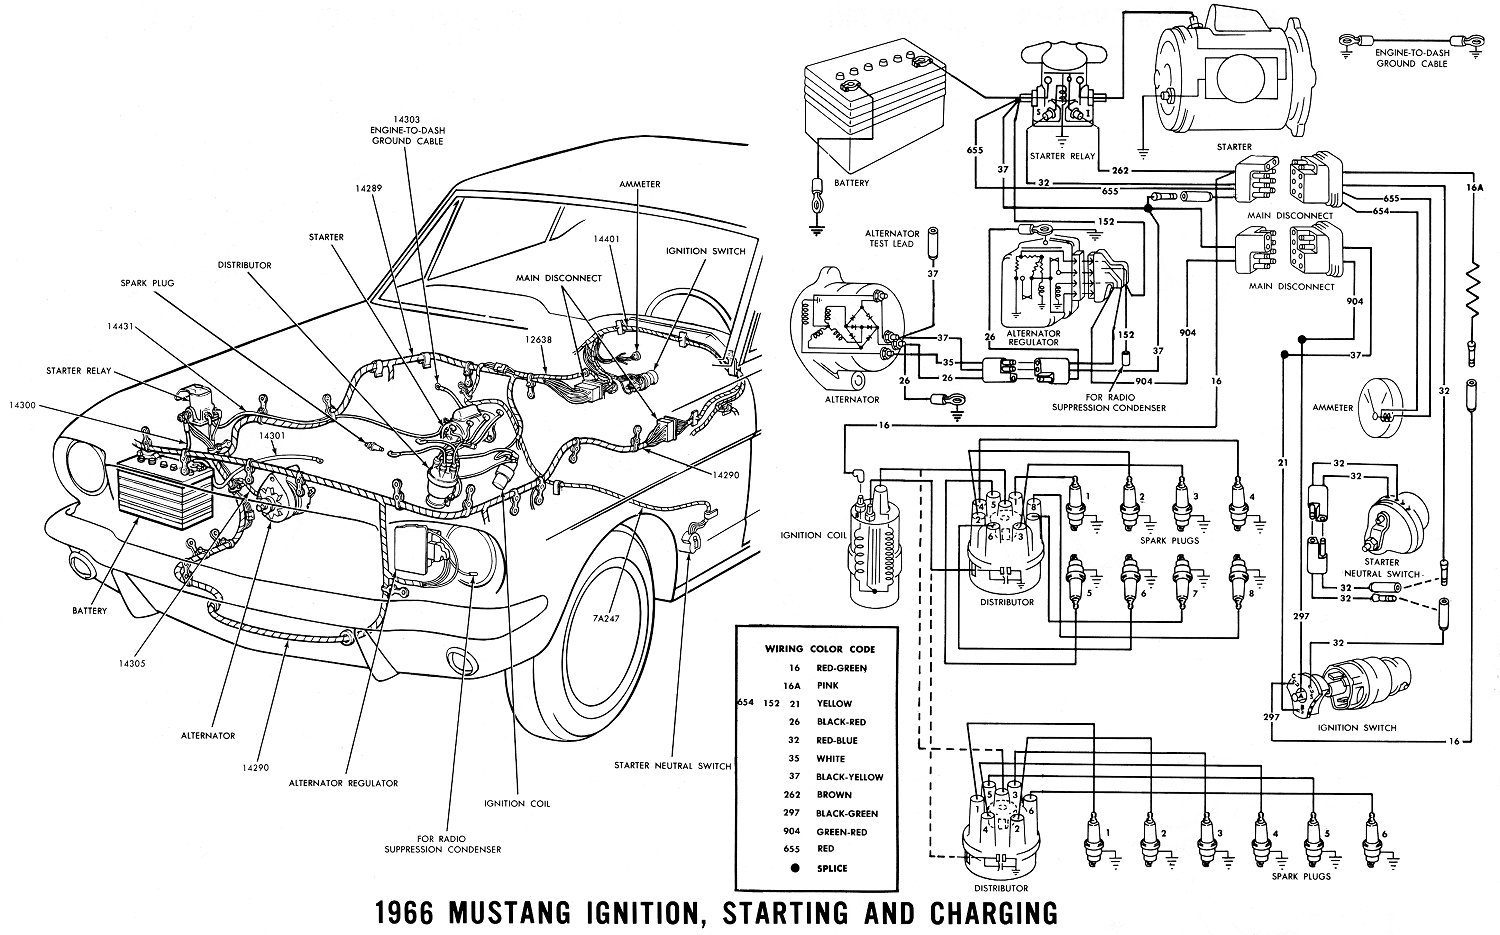 cadillac ignition switch wiring diagram free download